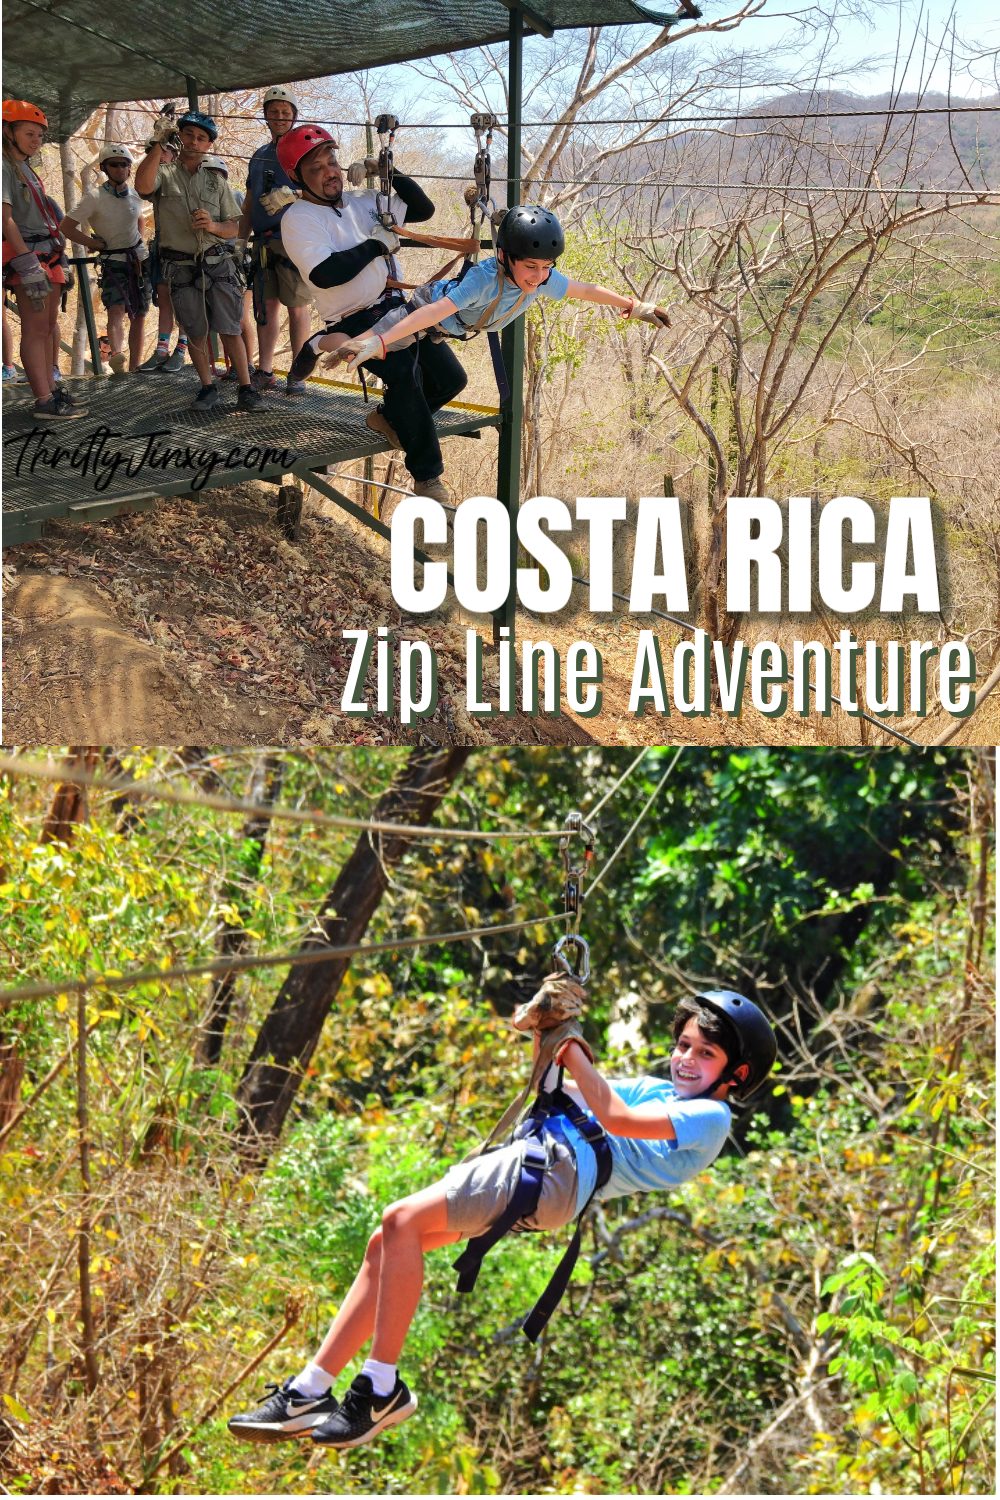 Congo Trail Zip Line Costa Rica